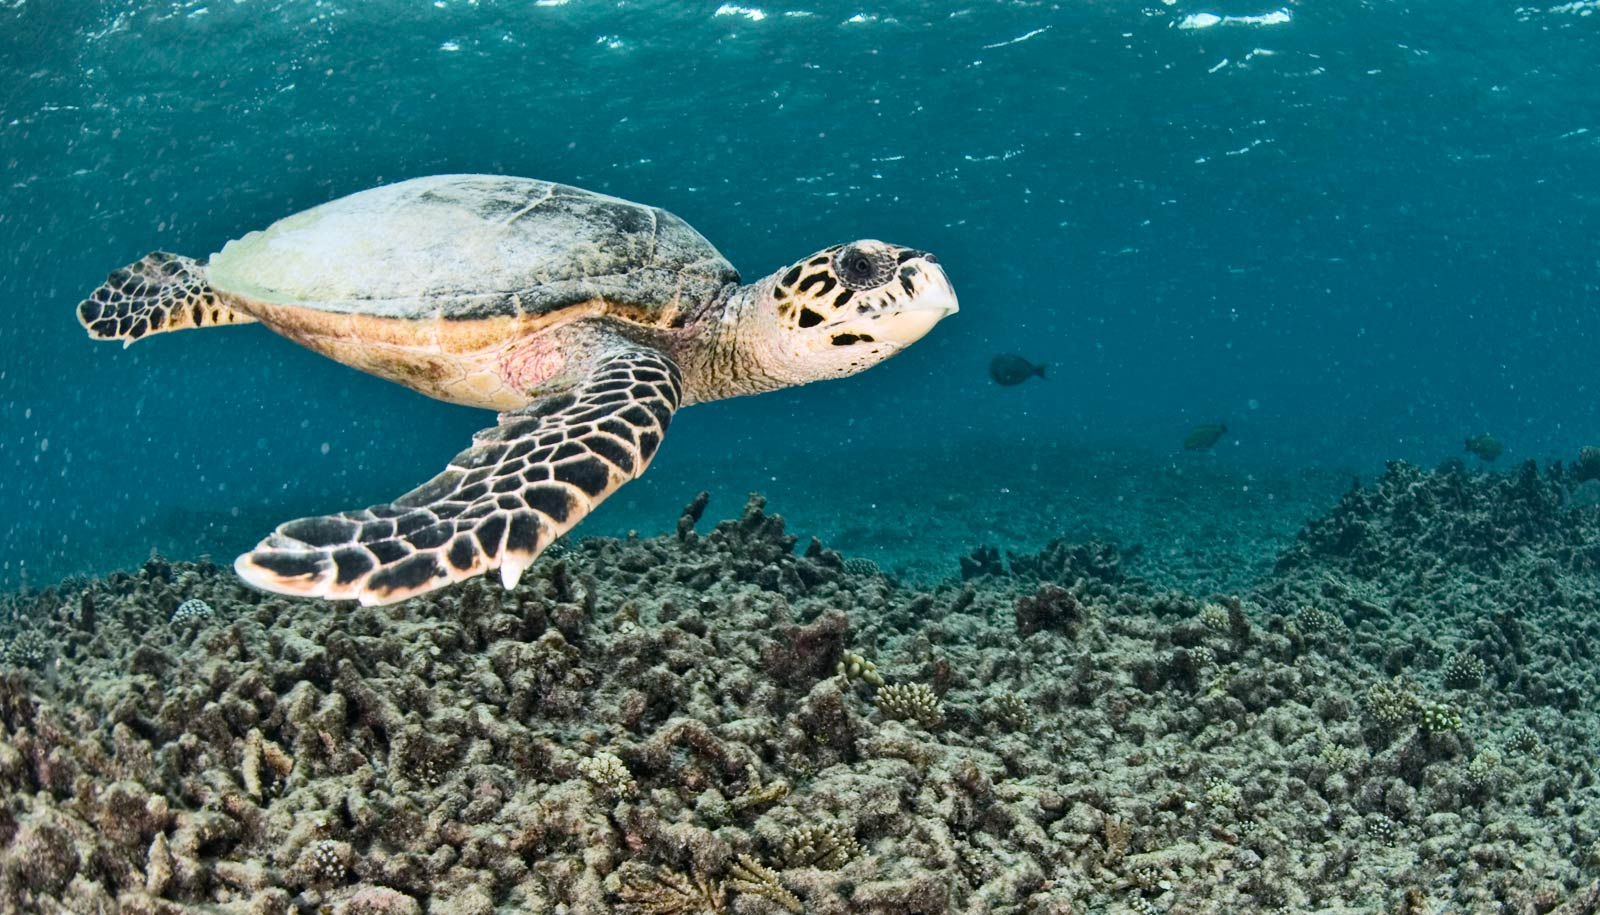 Not all coral reefs mind warm water